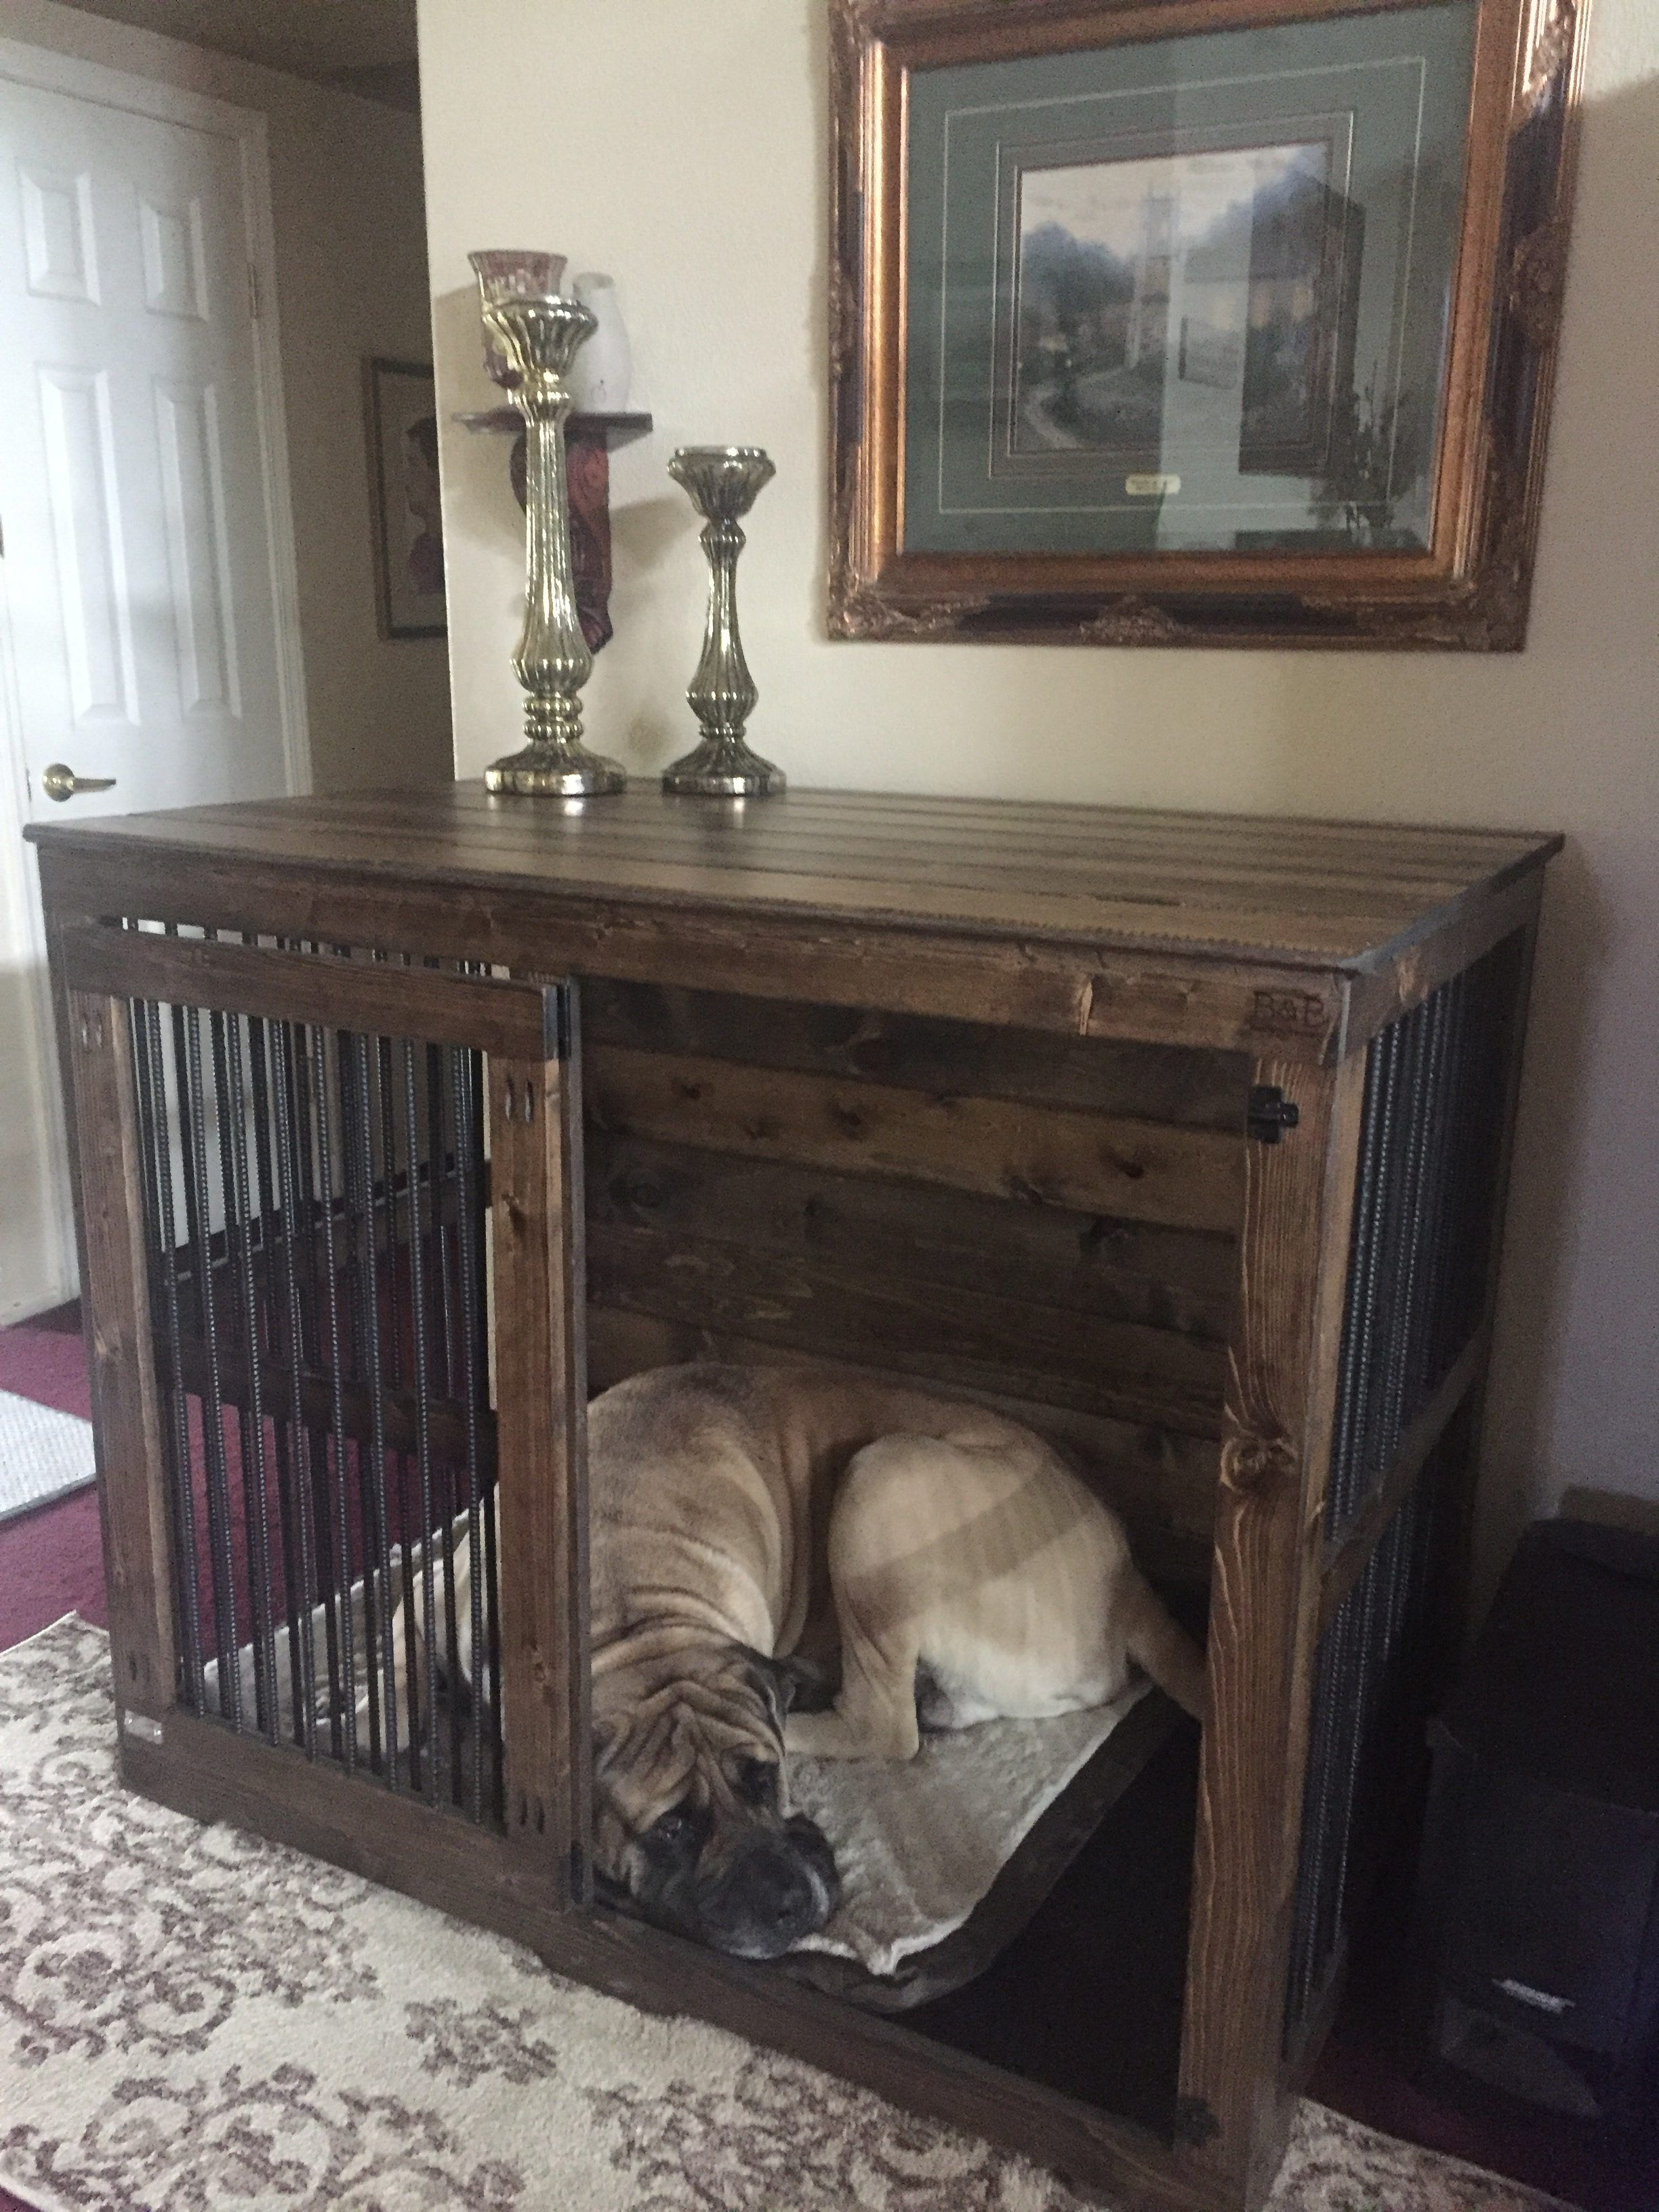 Great Dane Doggie Den Great Dane Kennels Dog Crate Furniture